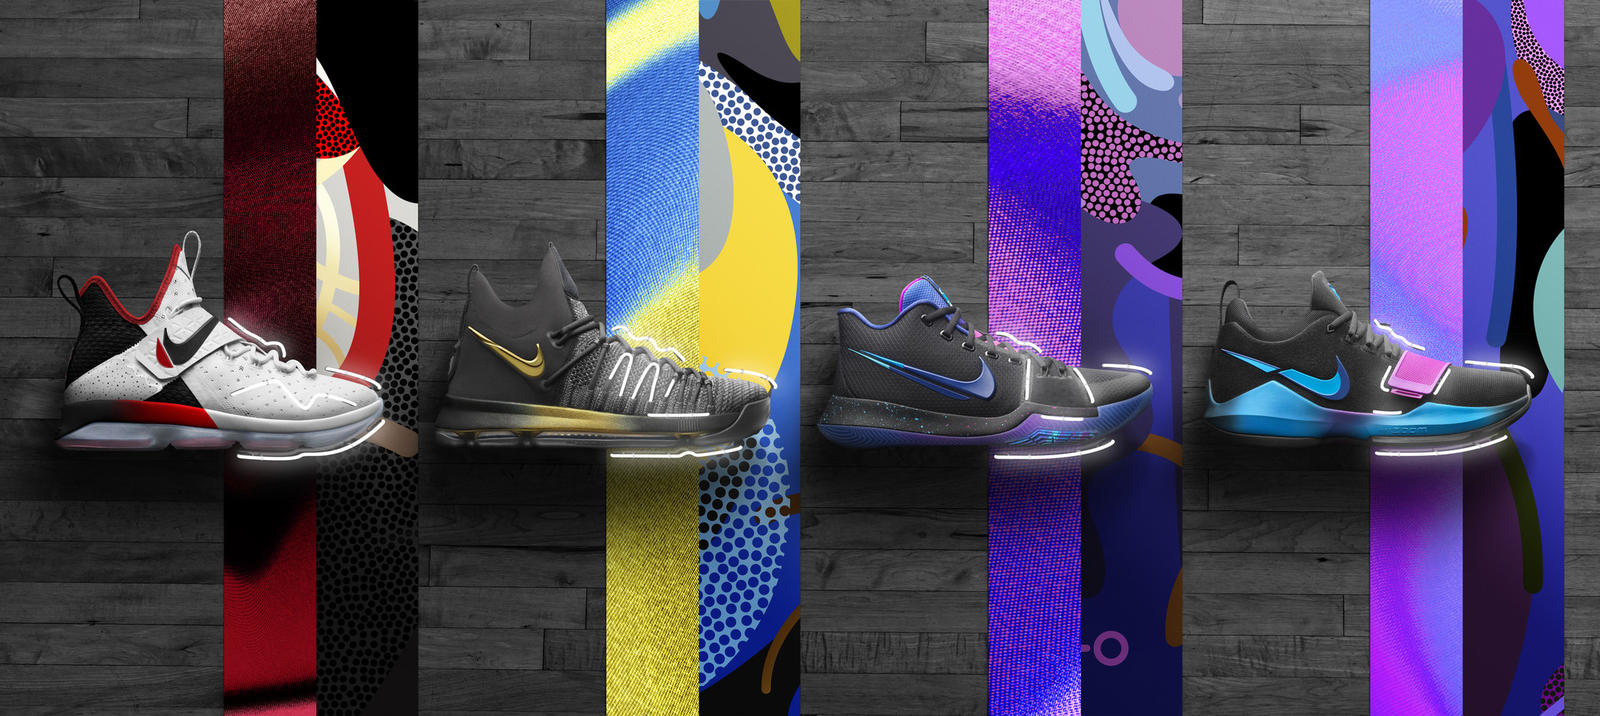 Presenting the Nike Basketball 'Flip the Switch' collection